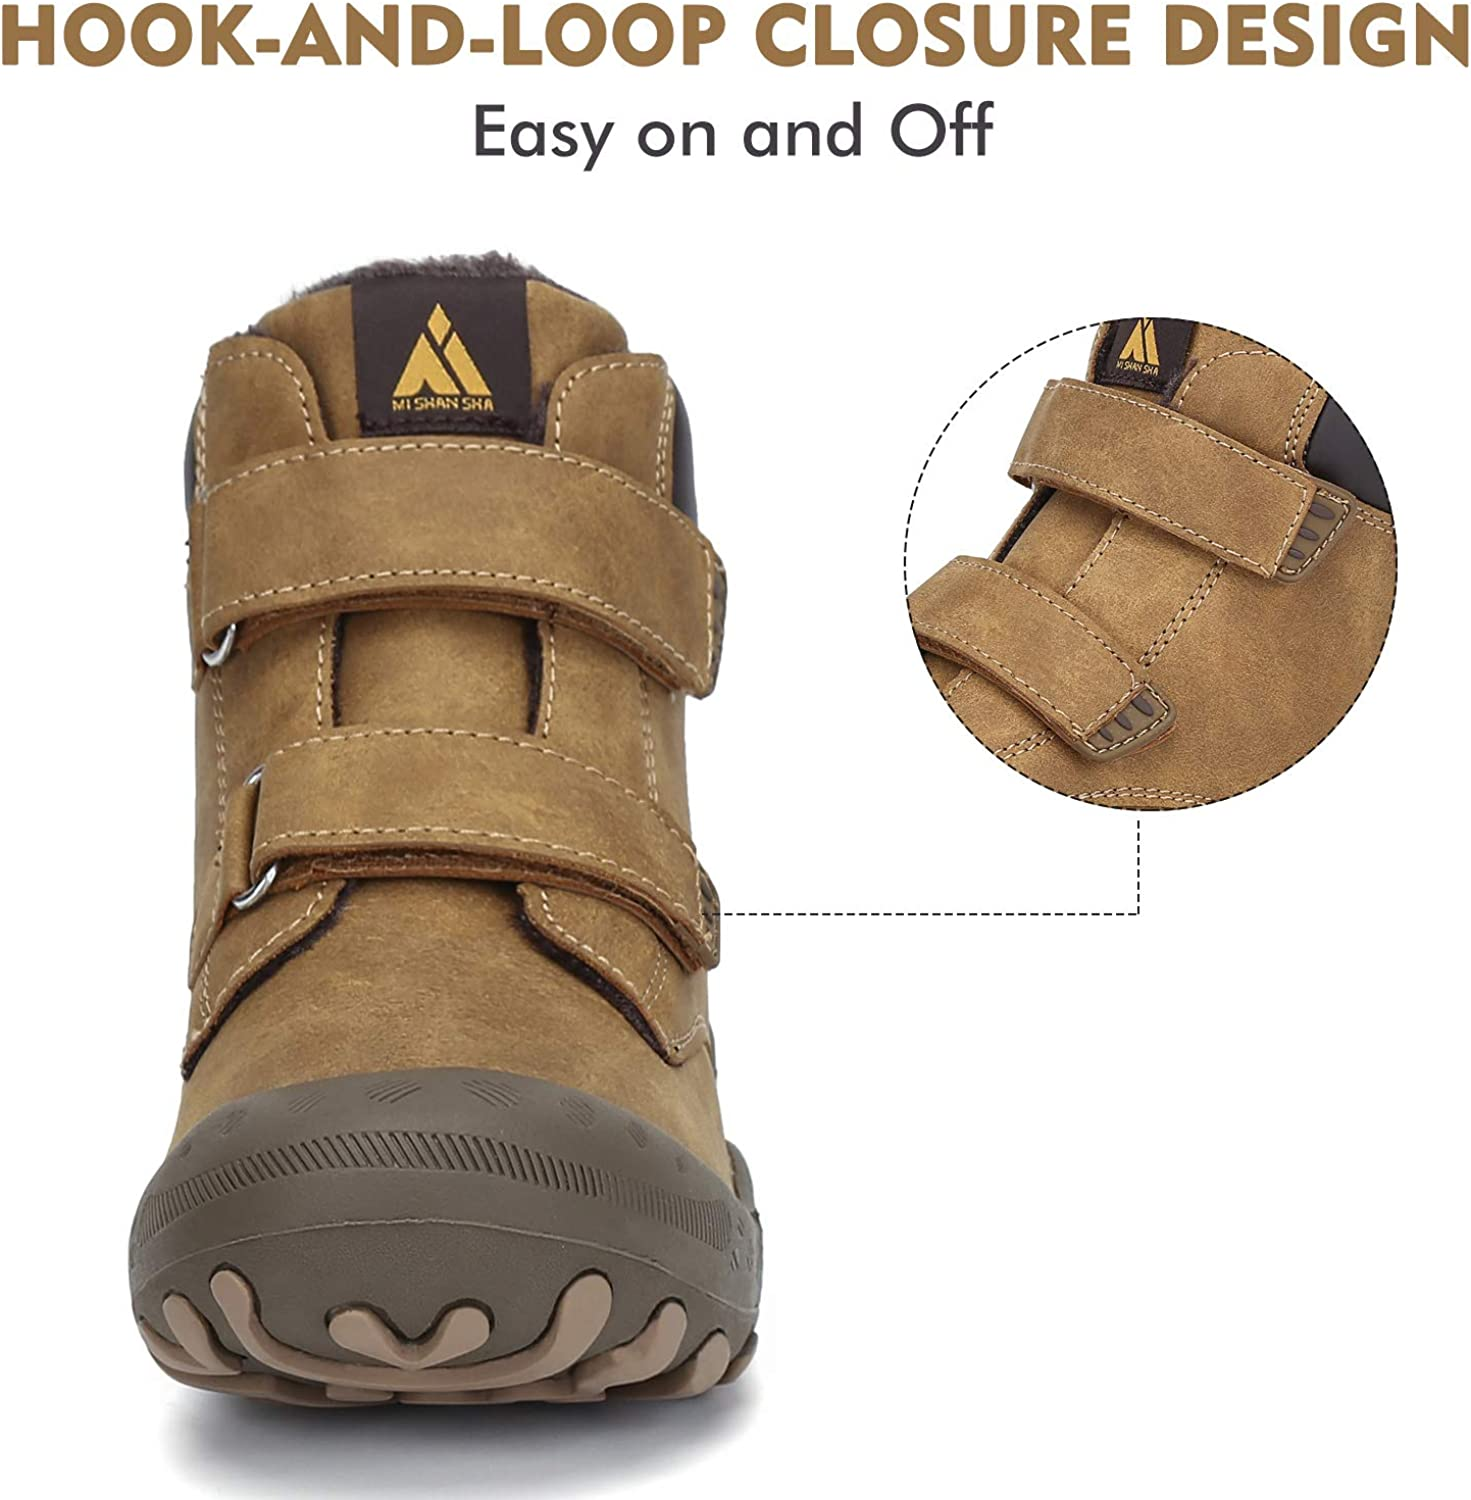 Mishansha Boys Girls Water Resistant Hiking Boots Anti Collision Non Slip Athletic Outdoor Ankle Walking Shoes